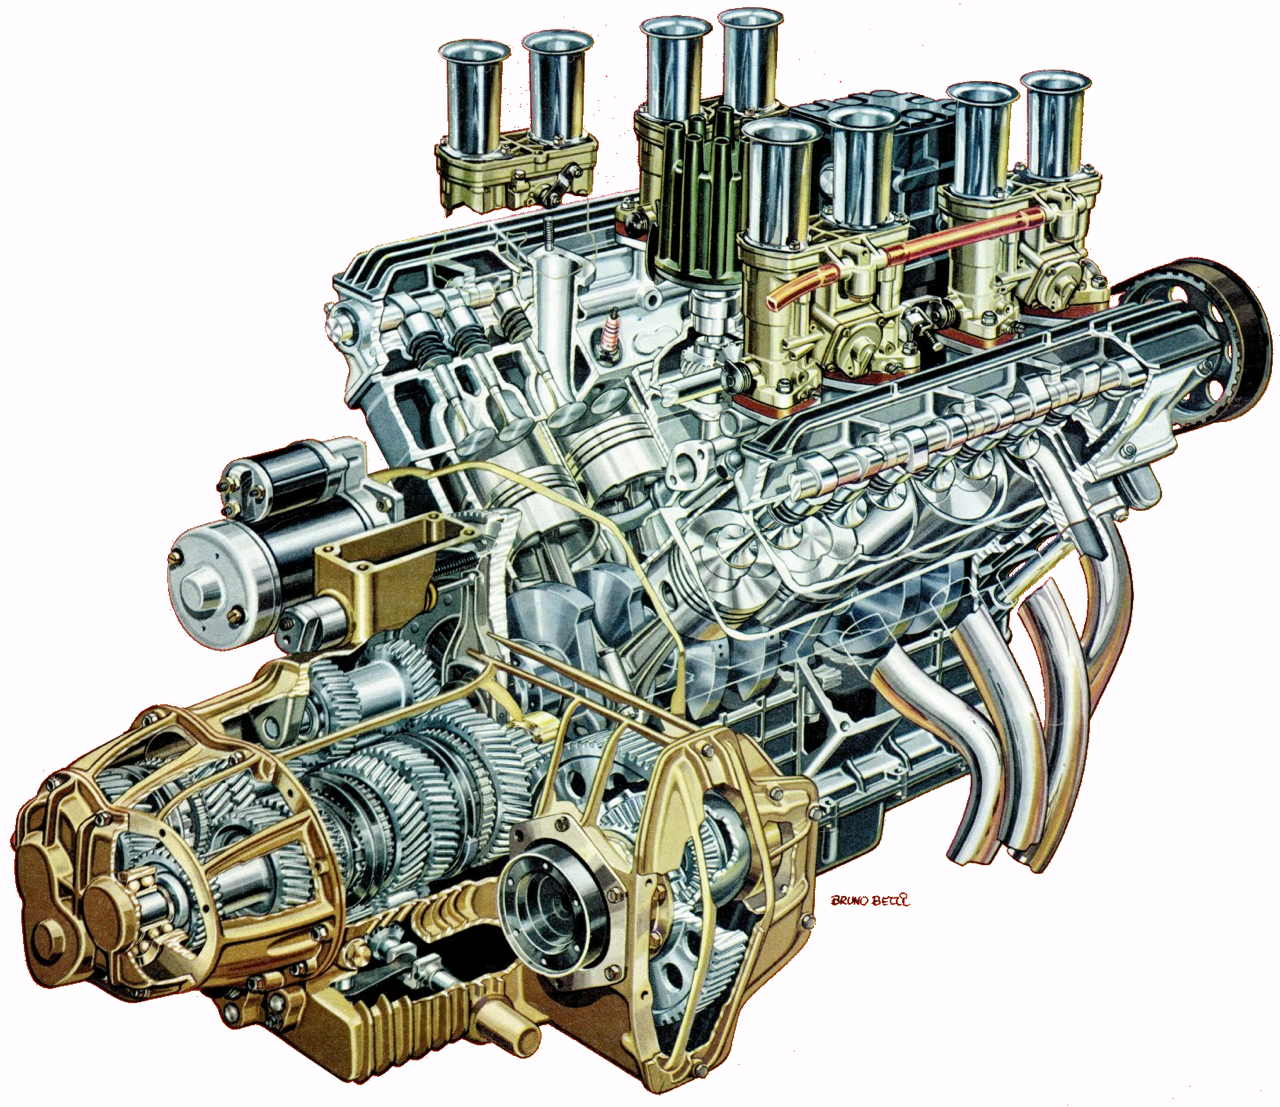 Car Engine Drawing At Free For Personal Use Jeep 360 Diagram 1280x1107 V8 Cutaway Illustration Race Engines Amp Cutaways